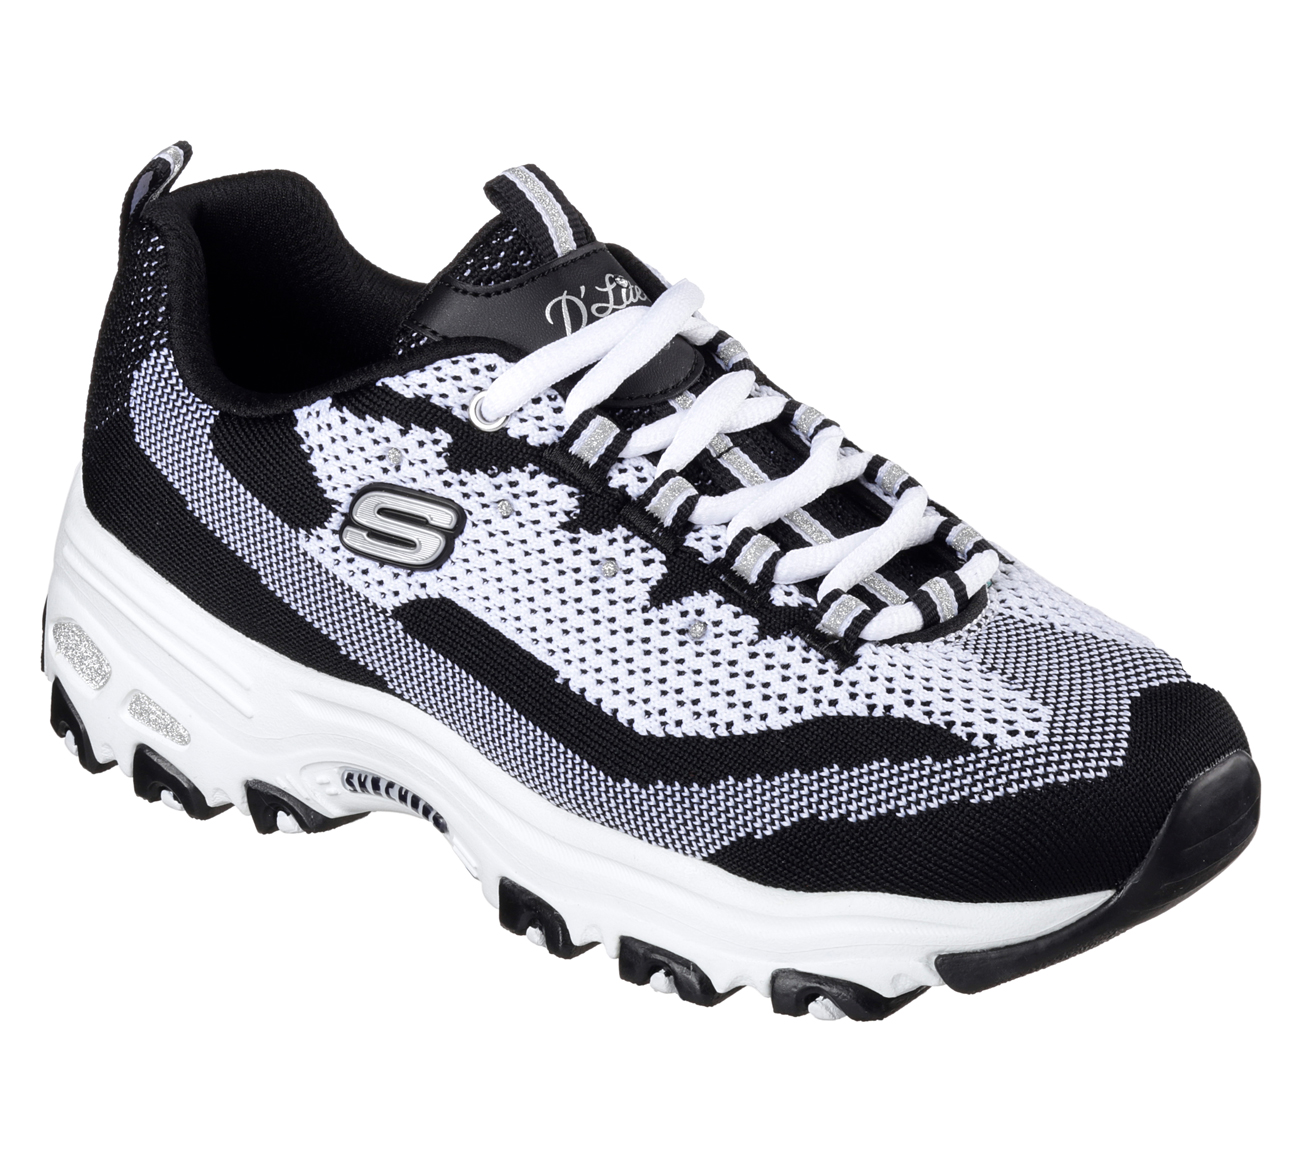 Skechers 11955 BKW Women's D'LITES-REINVENTION Walking by Skechers